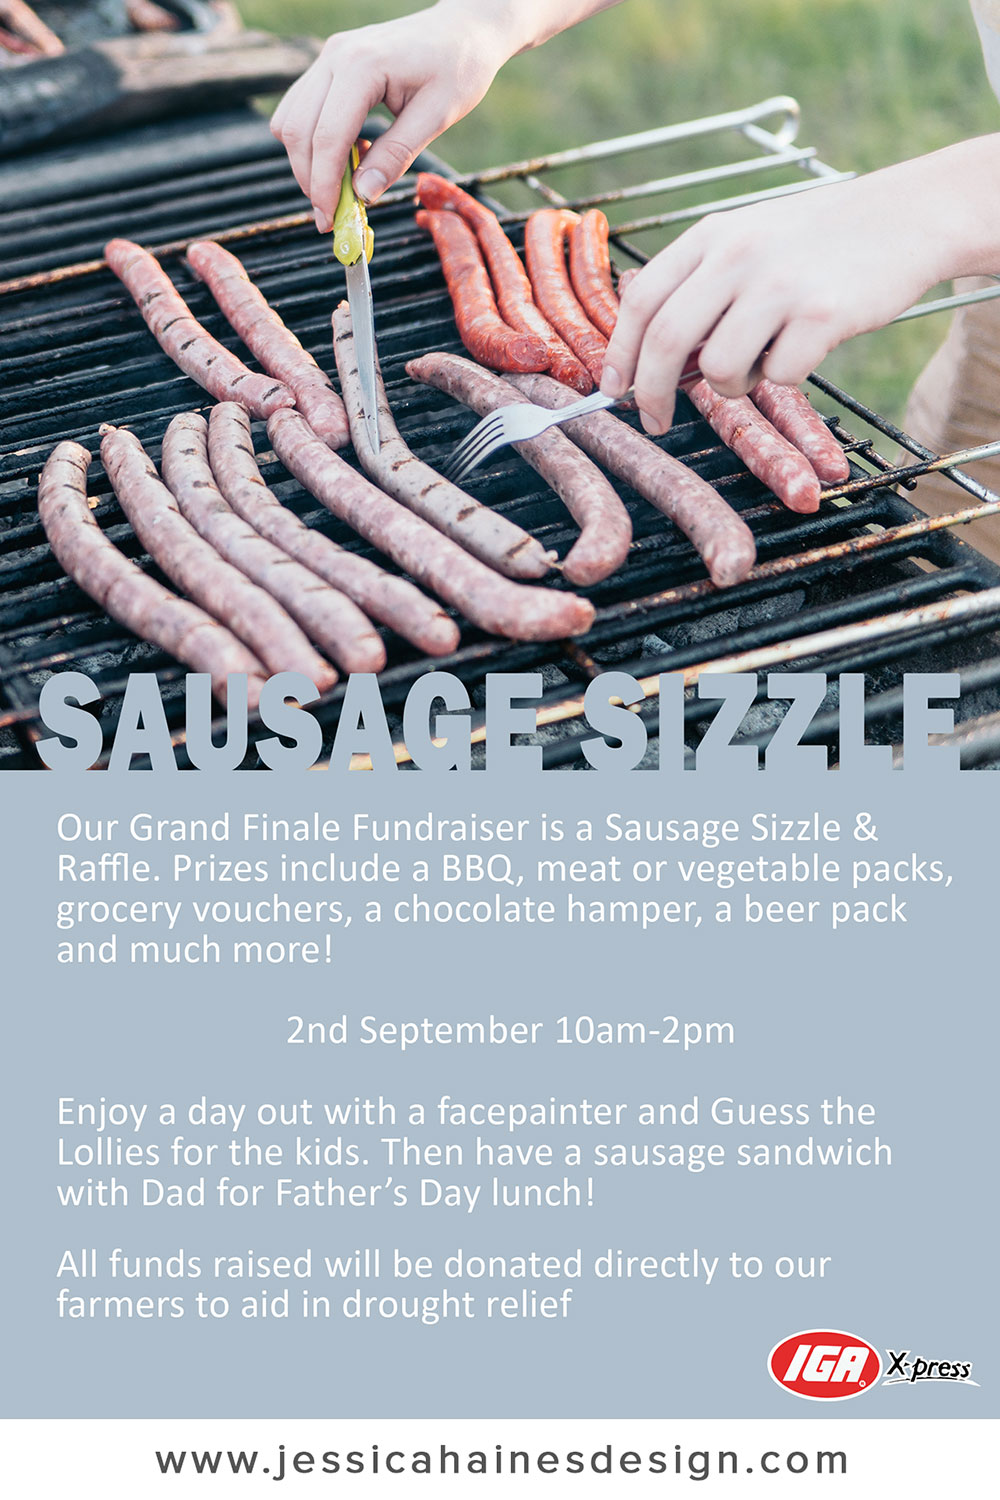 IGA XPress Drought Relief Fundraiser Sausage Sizzle Poster